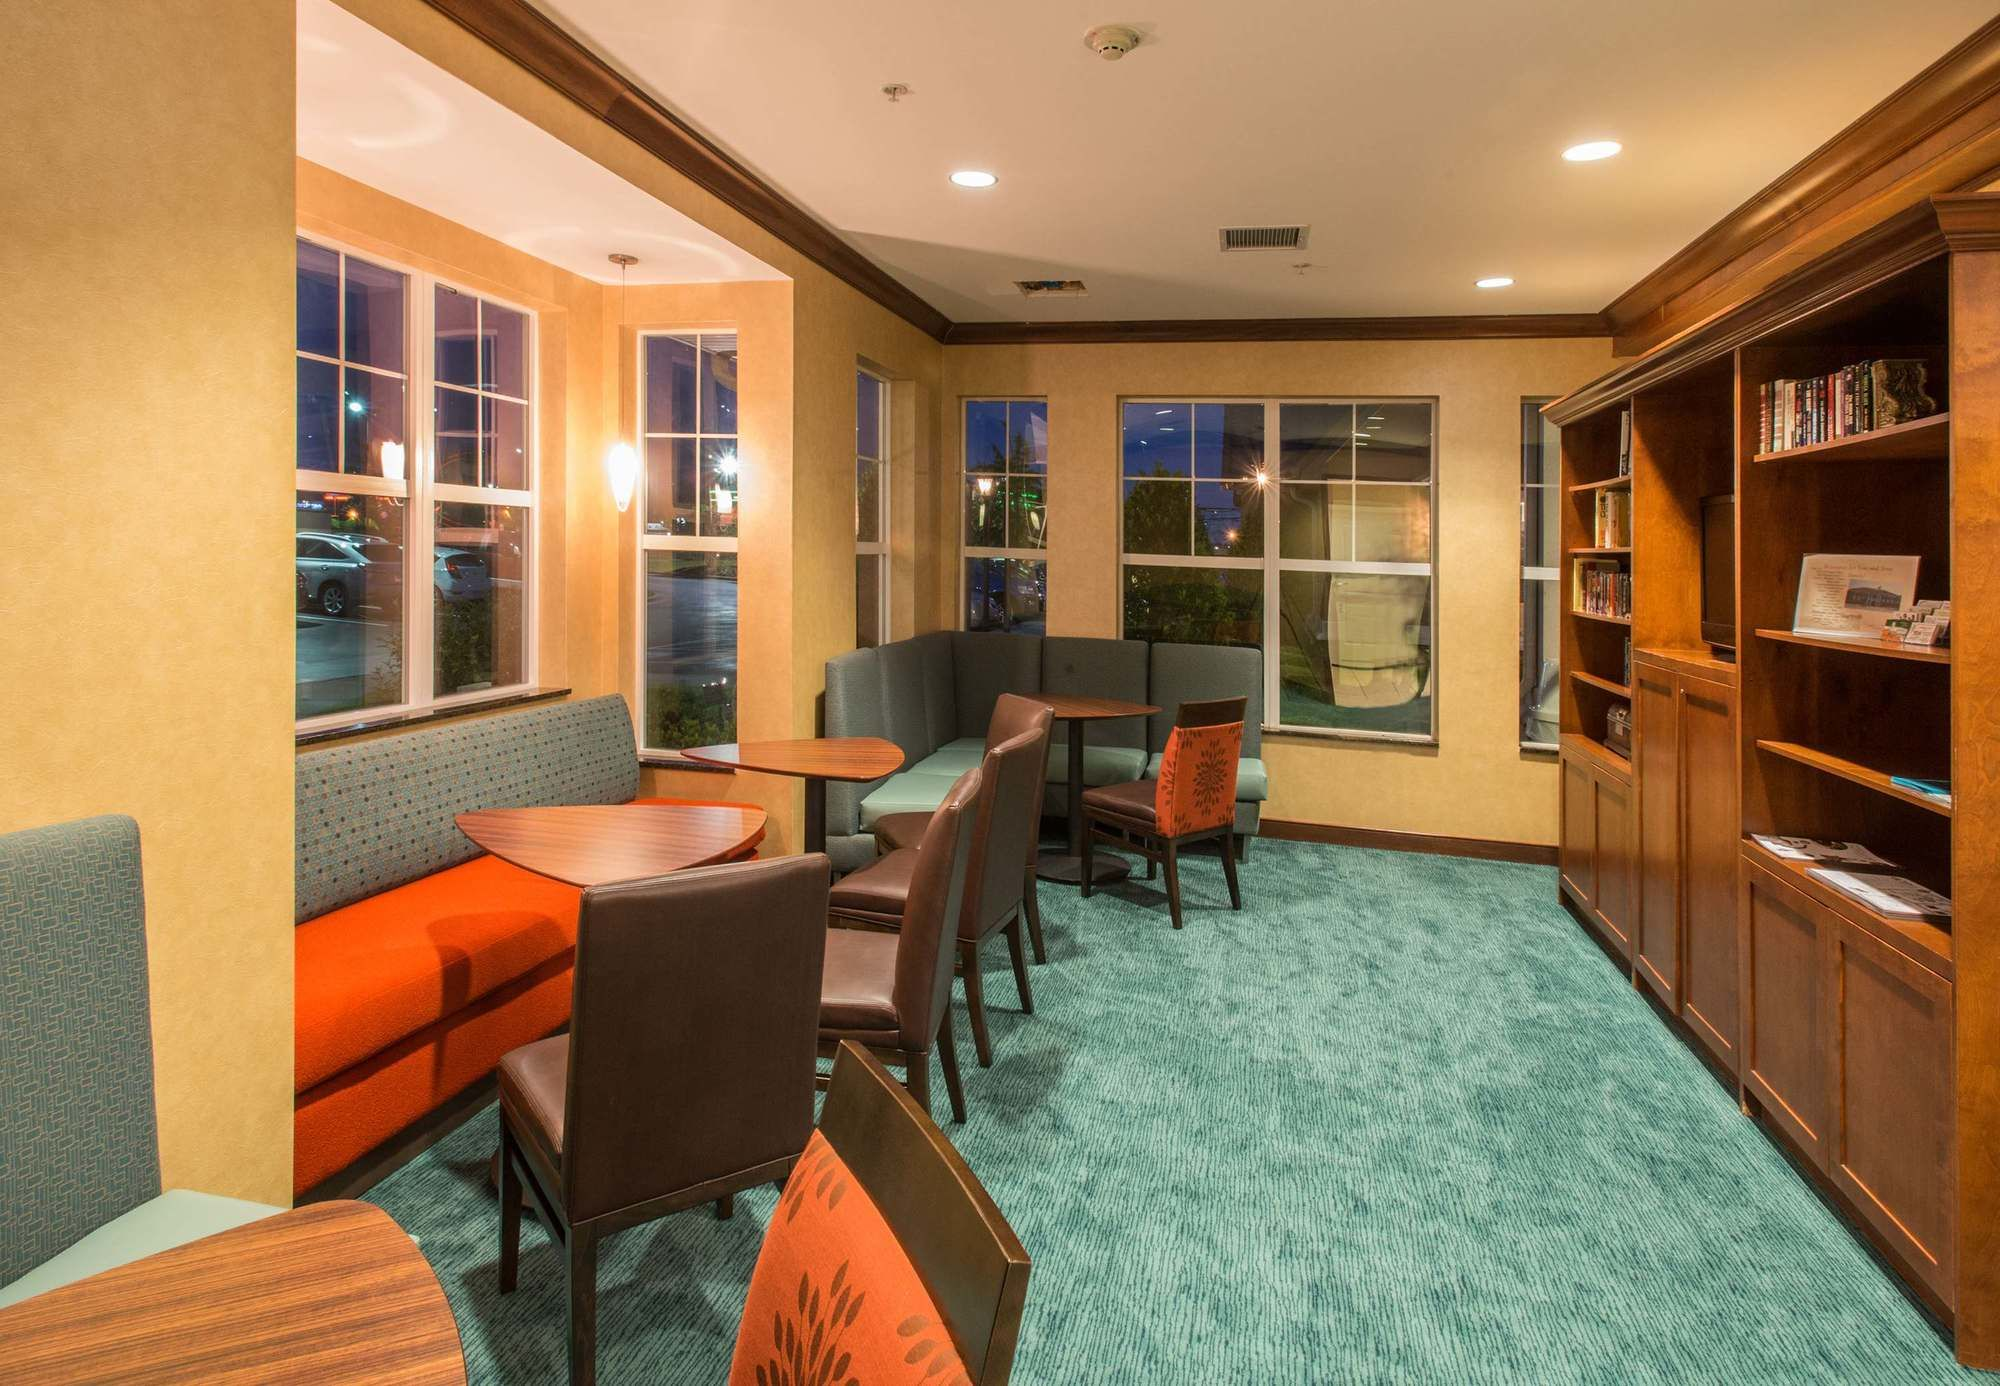 Fayetteville Hotel Coupons for Fayetteville, North Carolina ...